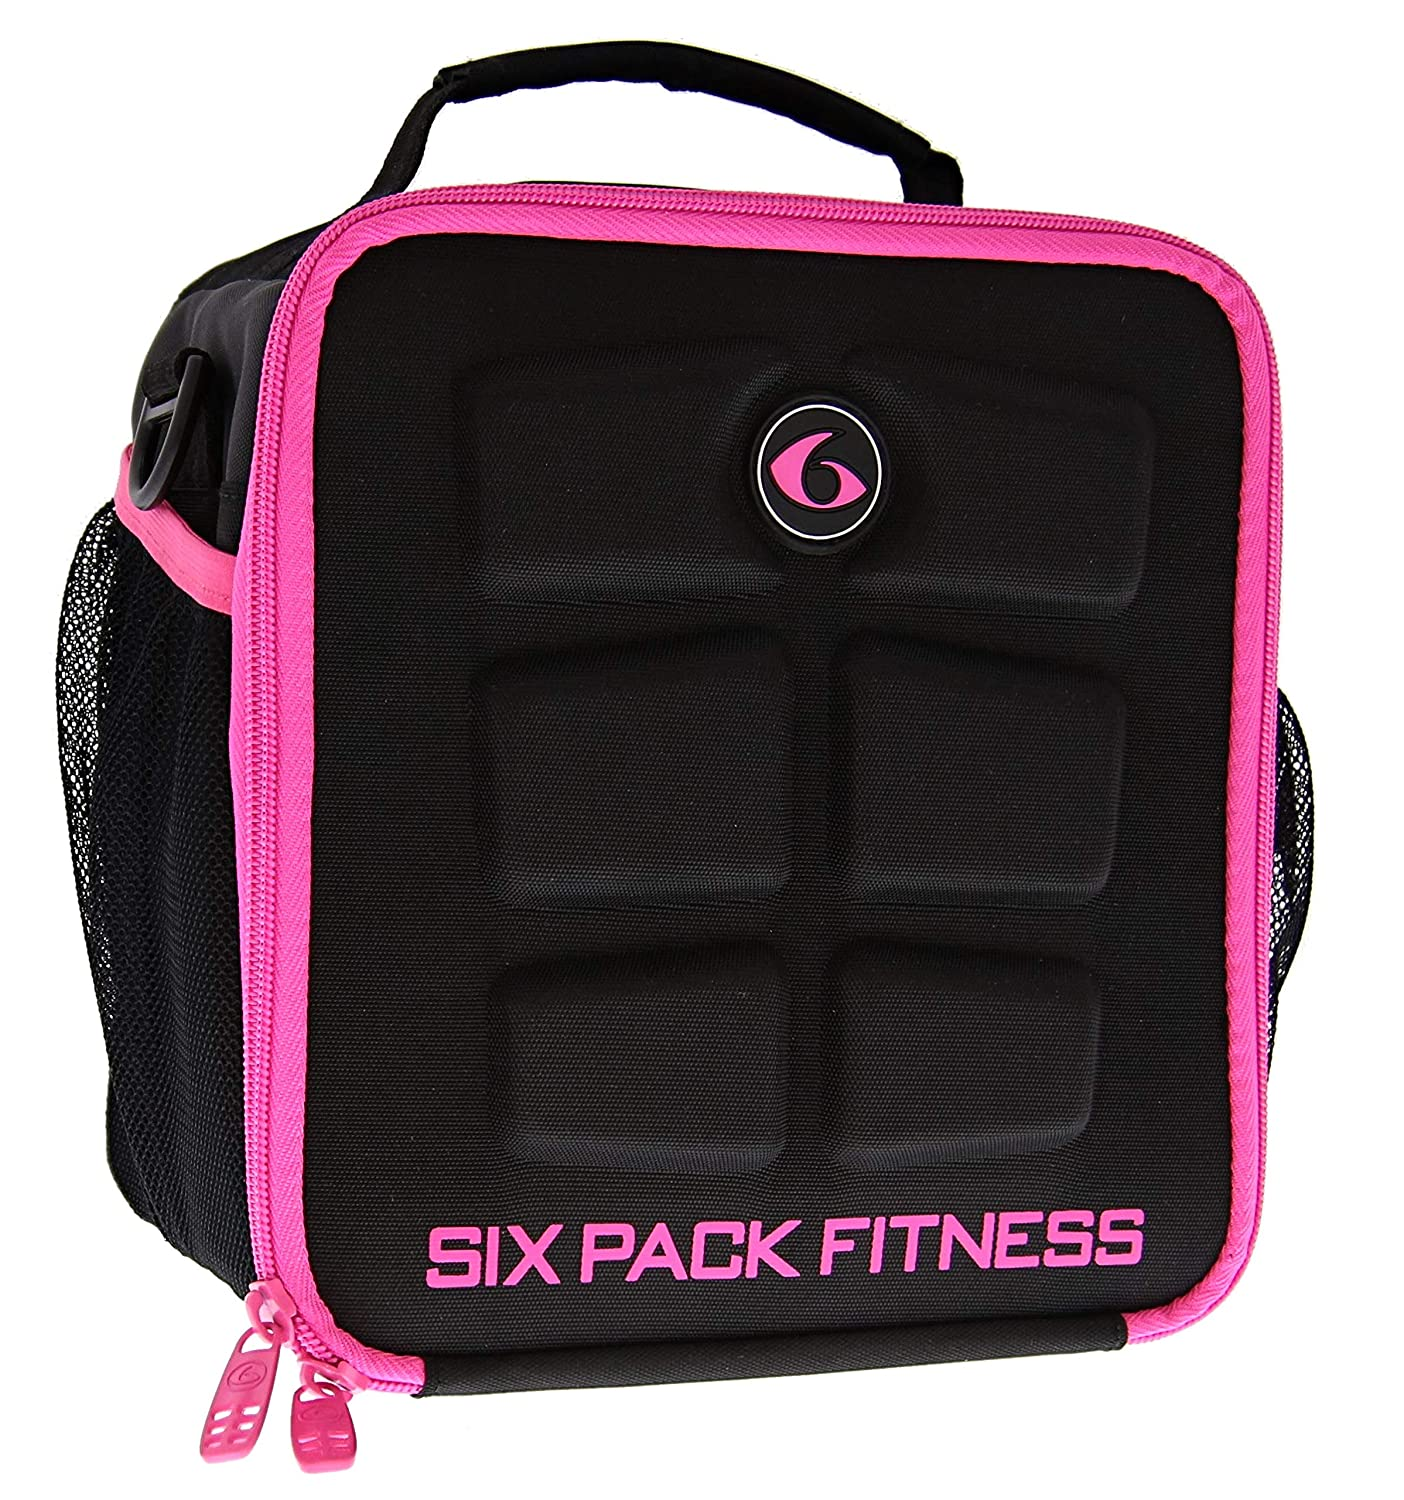 Black//Red 6 Pack Fitness Cube Americas #1 Choice in Meal Management 3 Meal